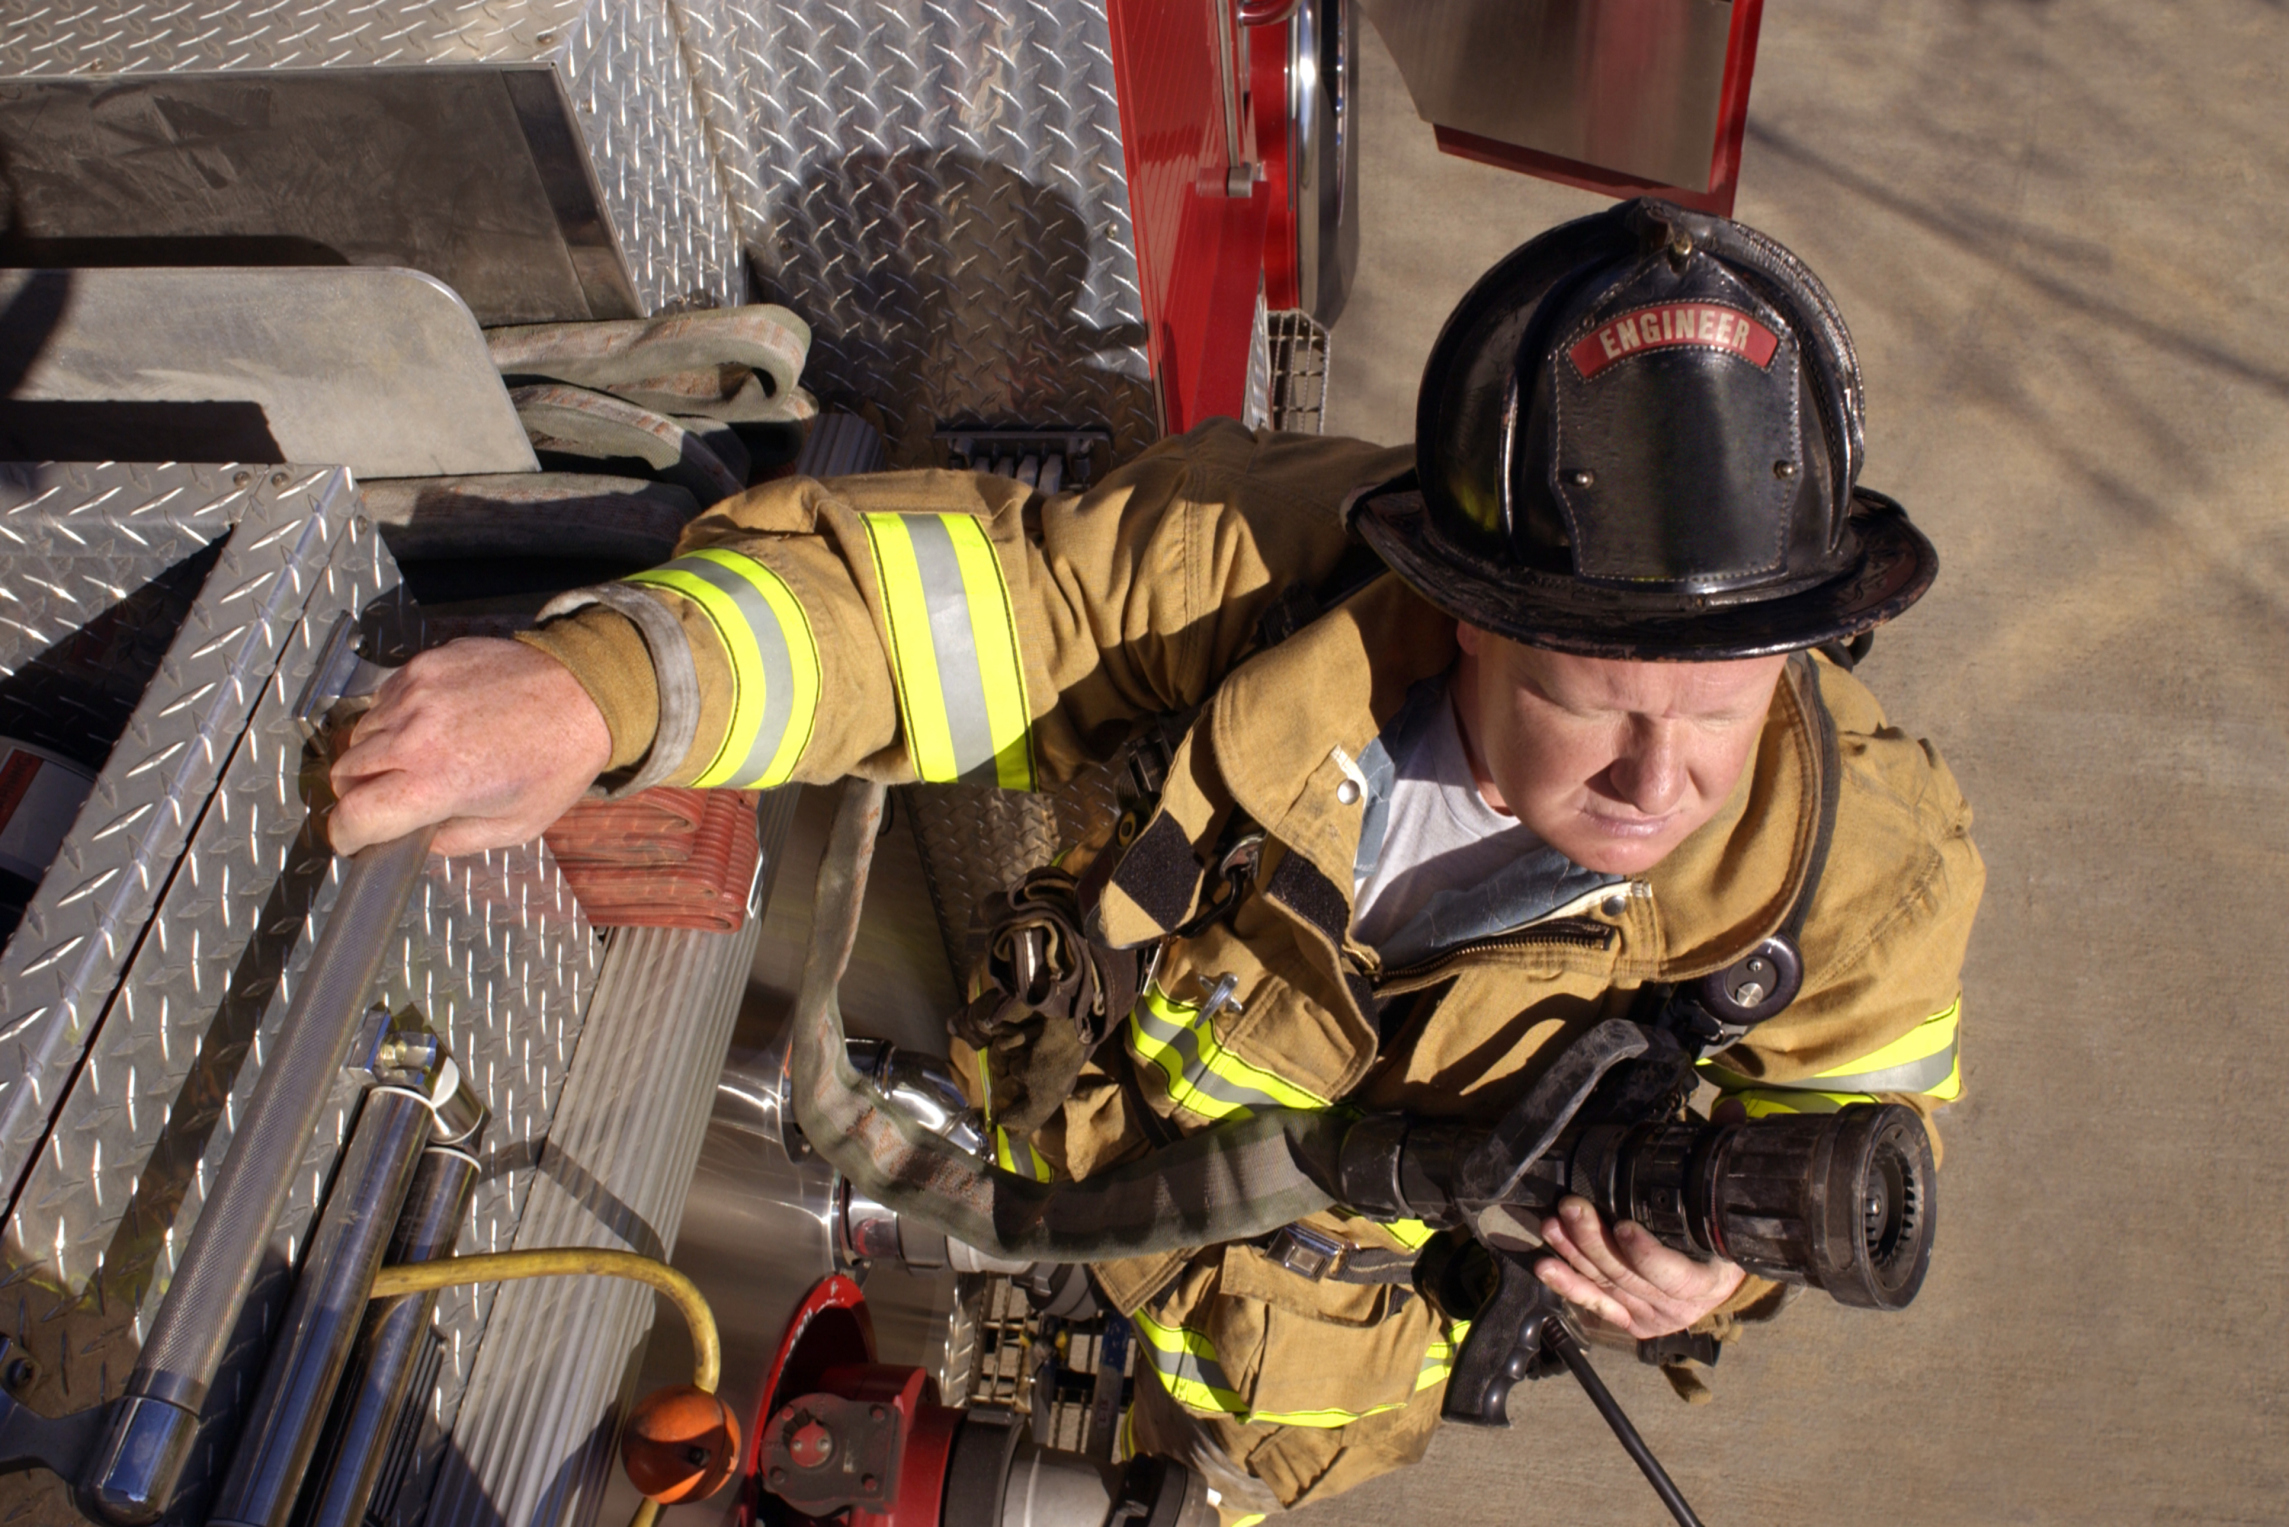 What Kinds of Benefits Do Firefighters Get? | Bizfluent